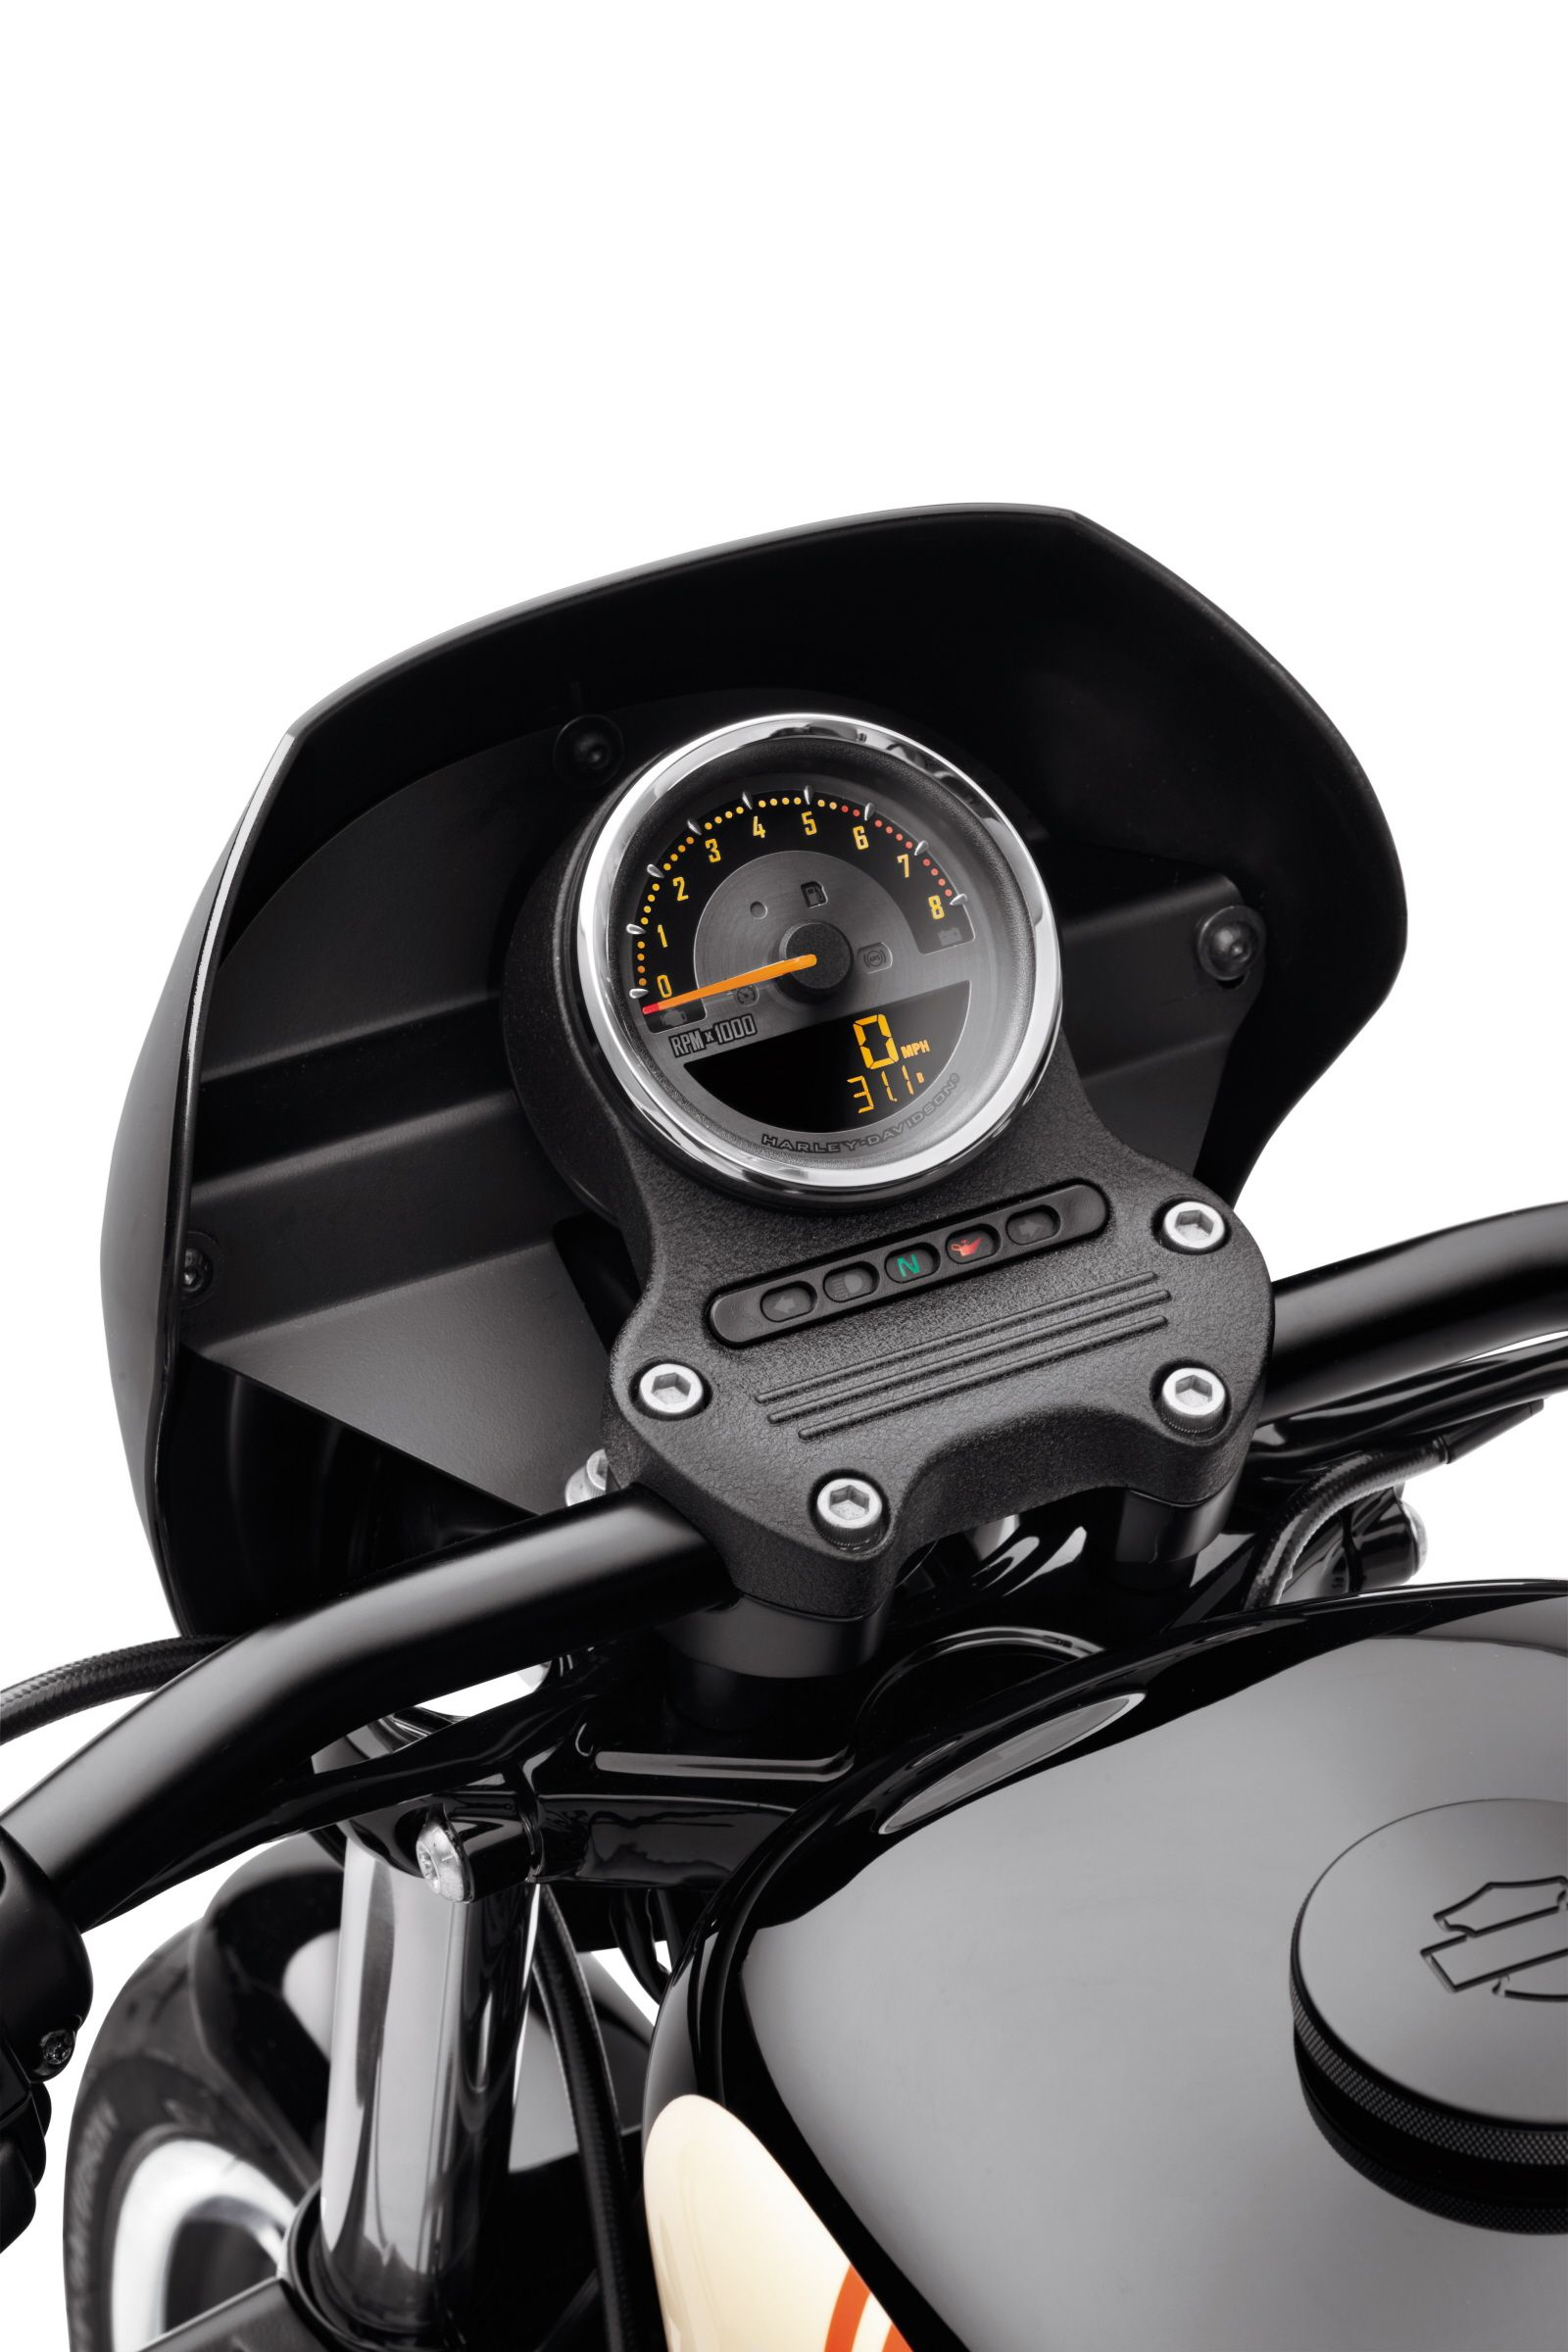 medium resolution of  fuel level and gear position without adding additional handlebar mounted gauges harley davidson combination digital speedometer analog tachometer